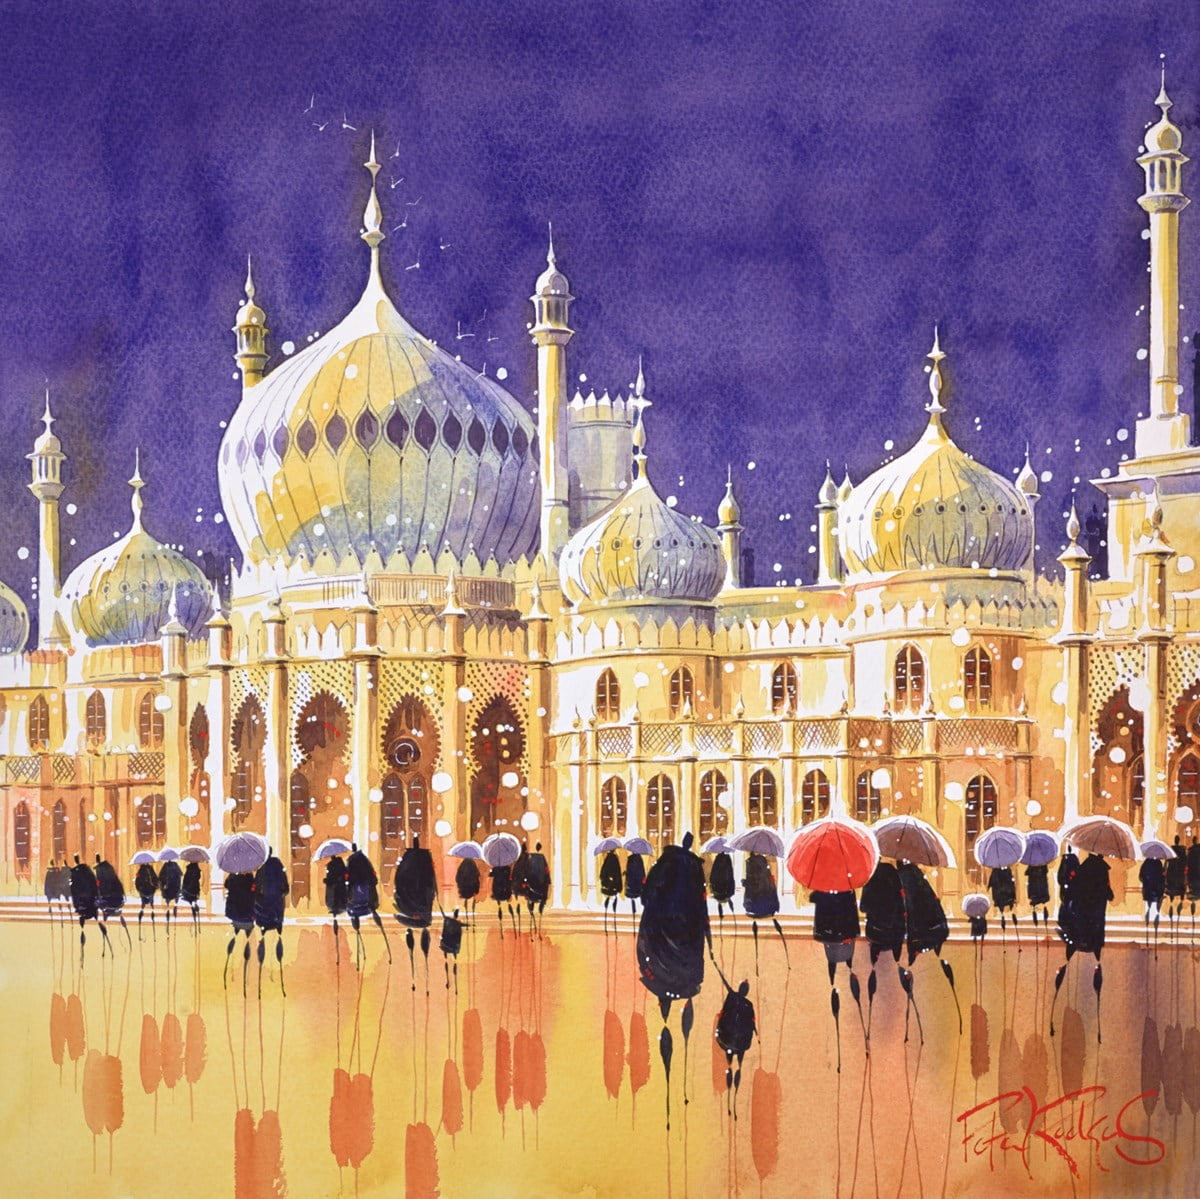 Pavilion Reflections, Brighton ~ Peter J Rodgers